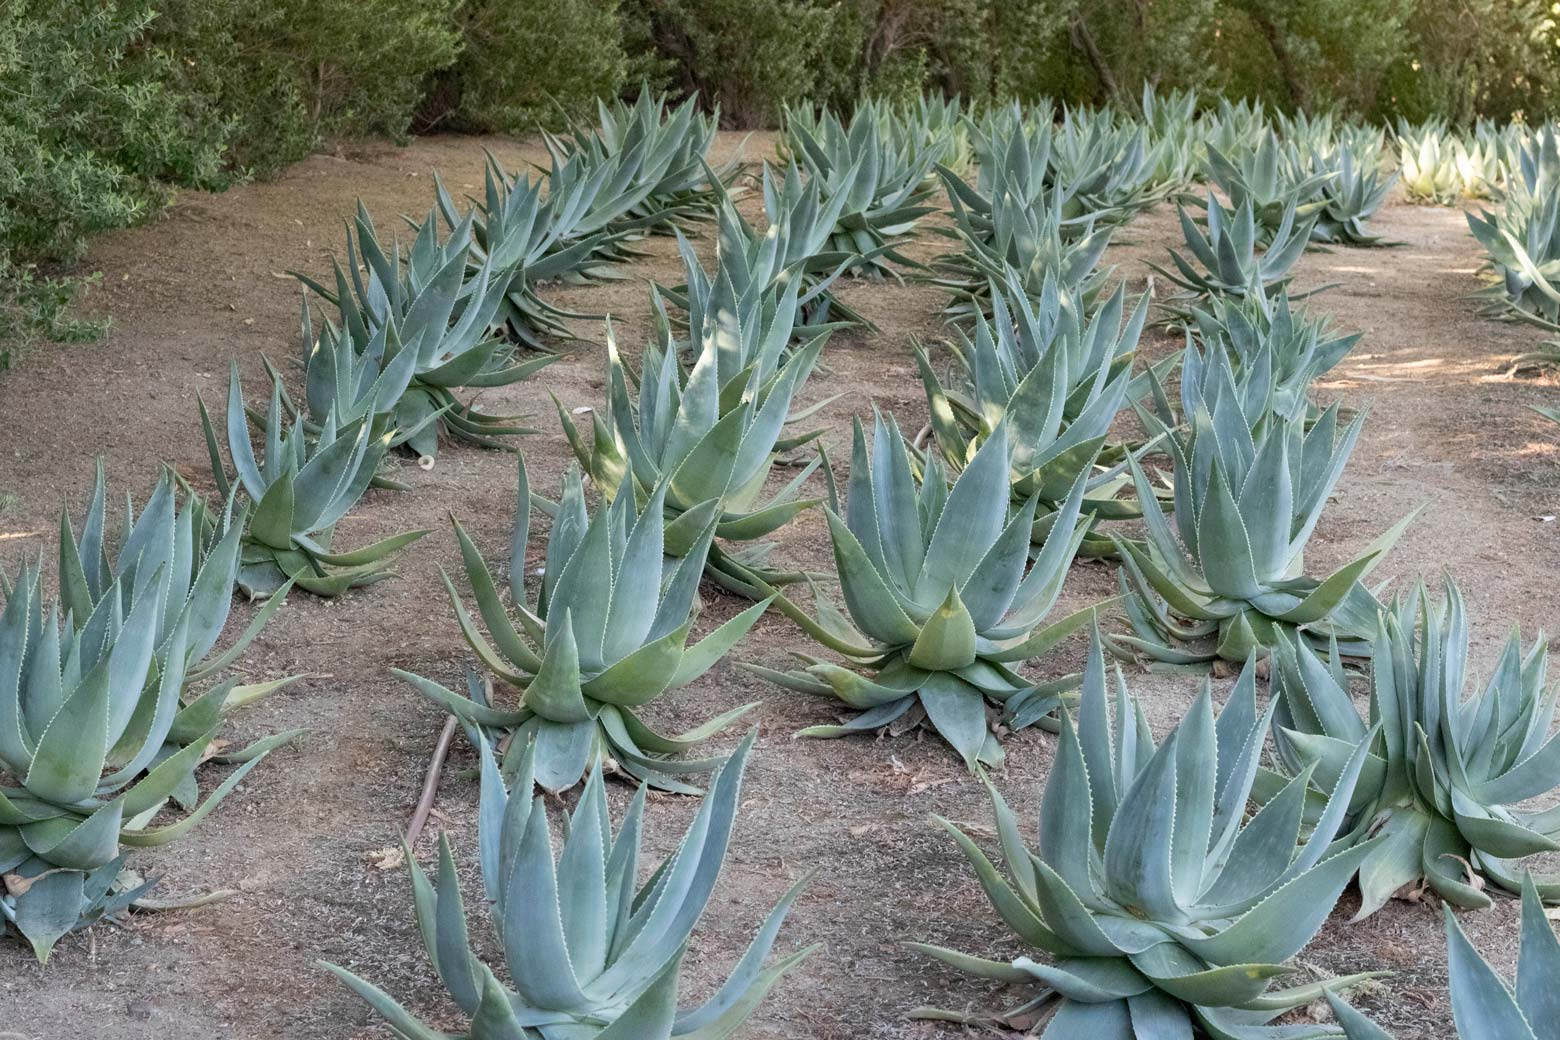 A grouping of Ghost Aloe.